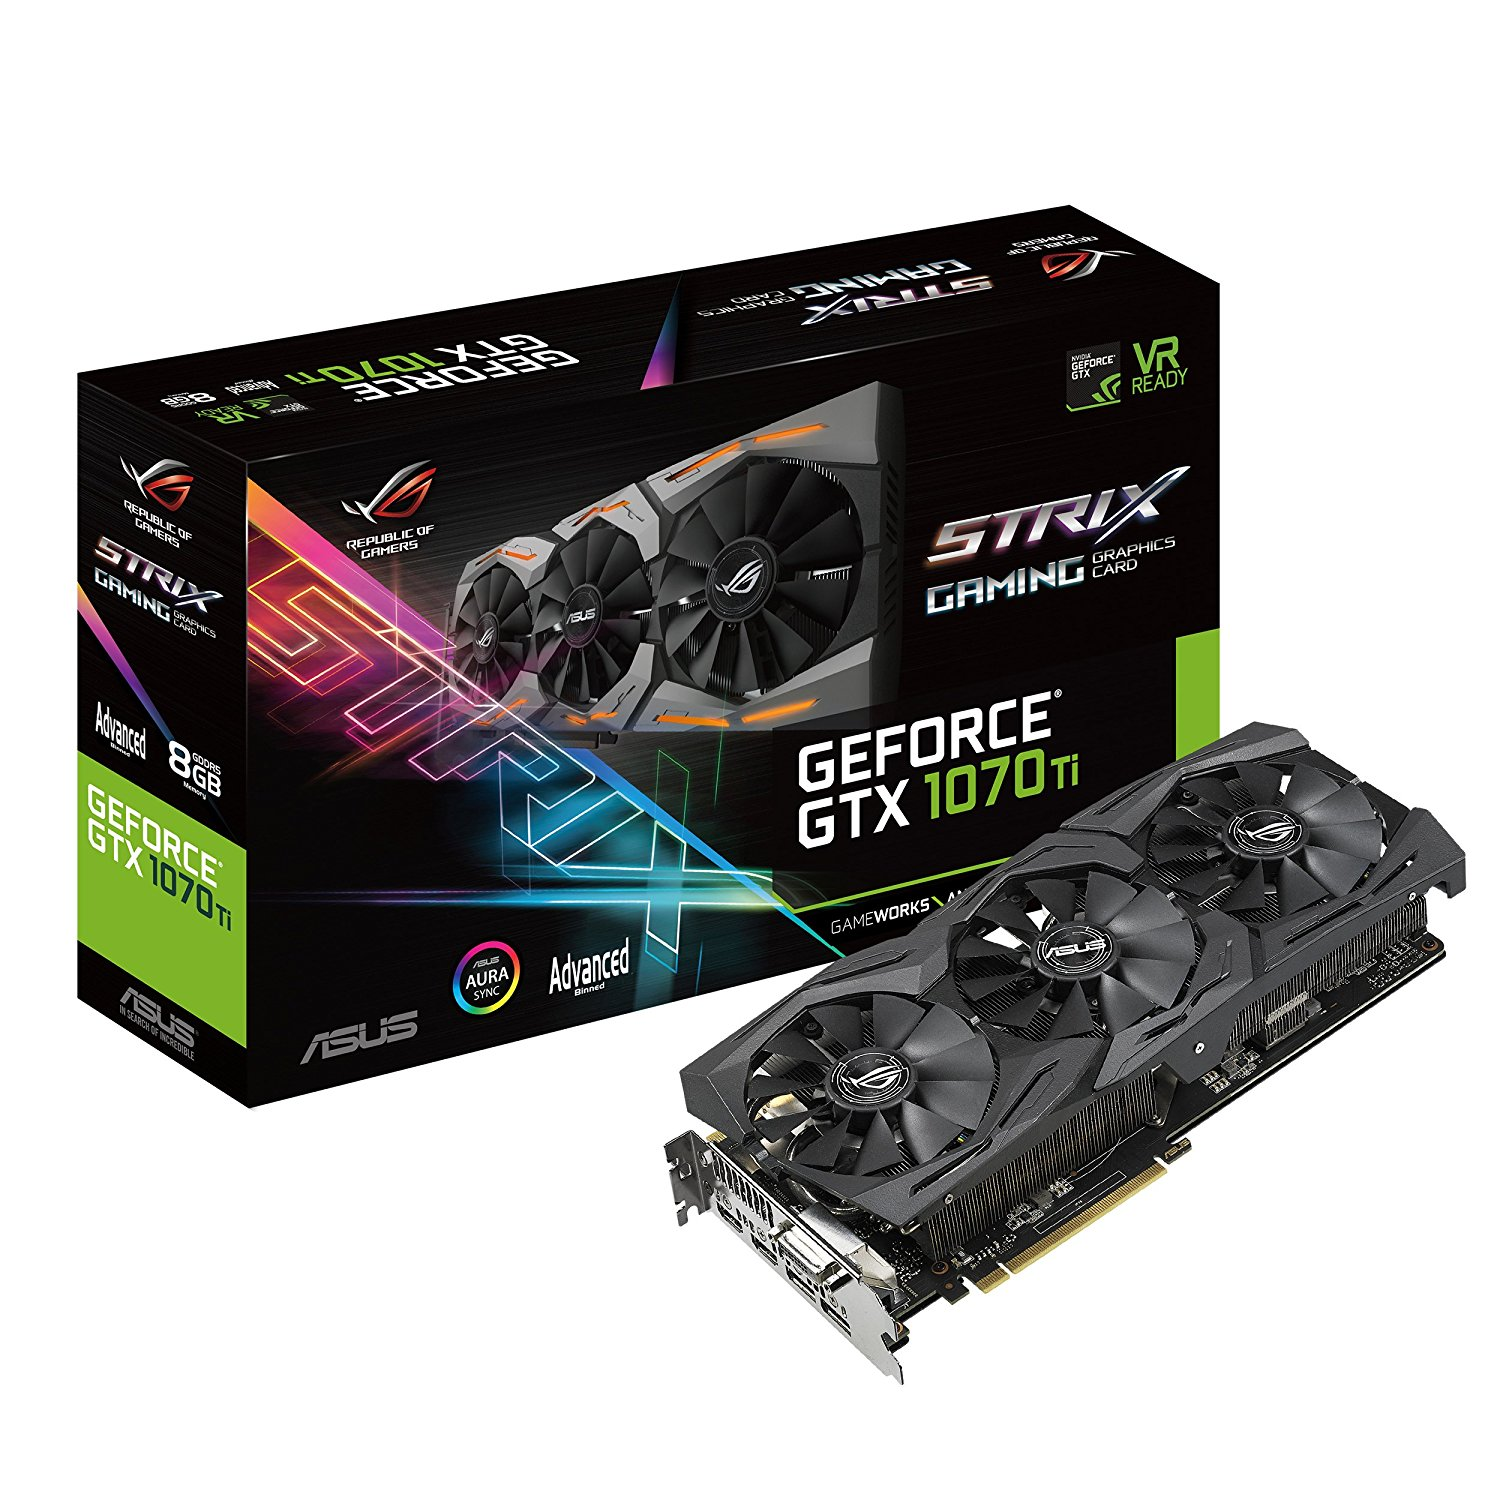 ASUS ROG GeForce GTX 1070 Ti STRIX-GTX1070TI-A8G-GAMING 8GB 256-Bit GDDR5